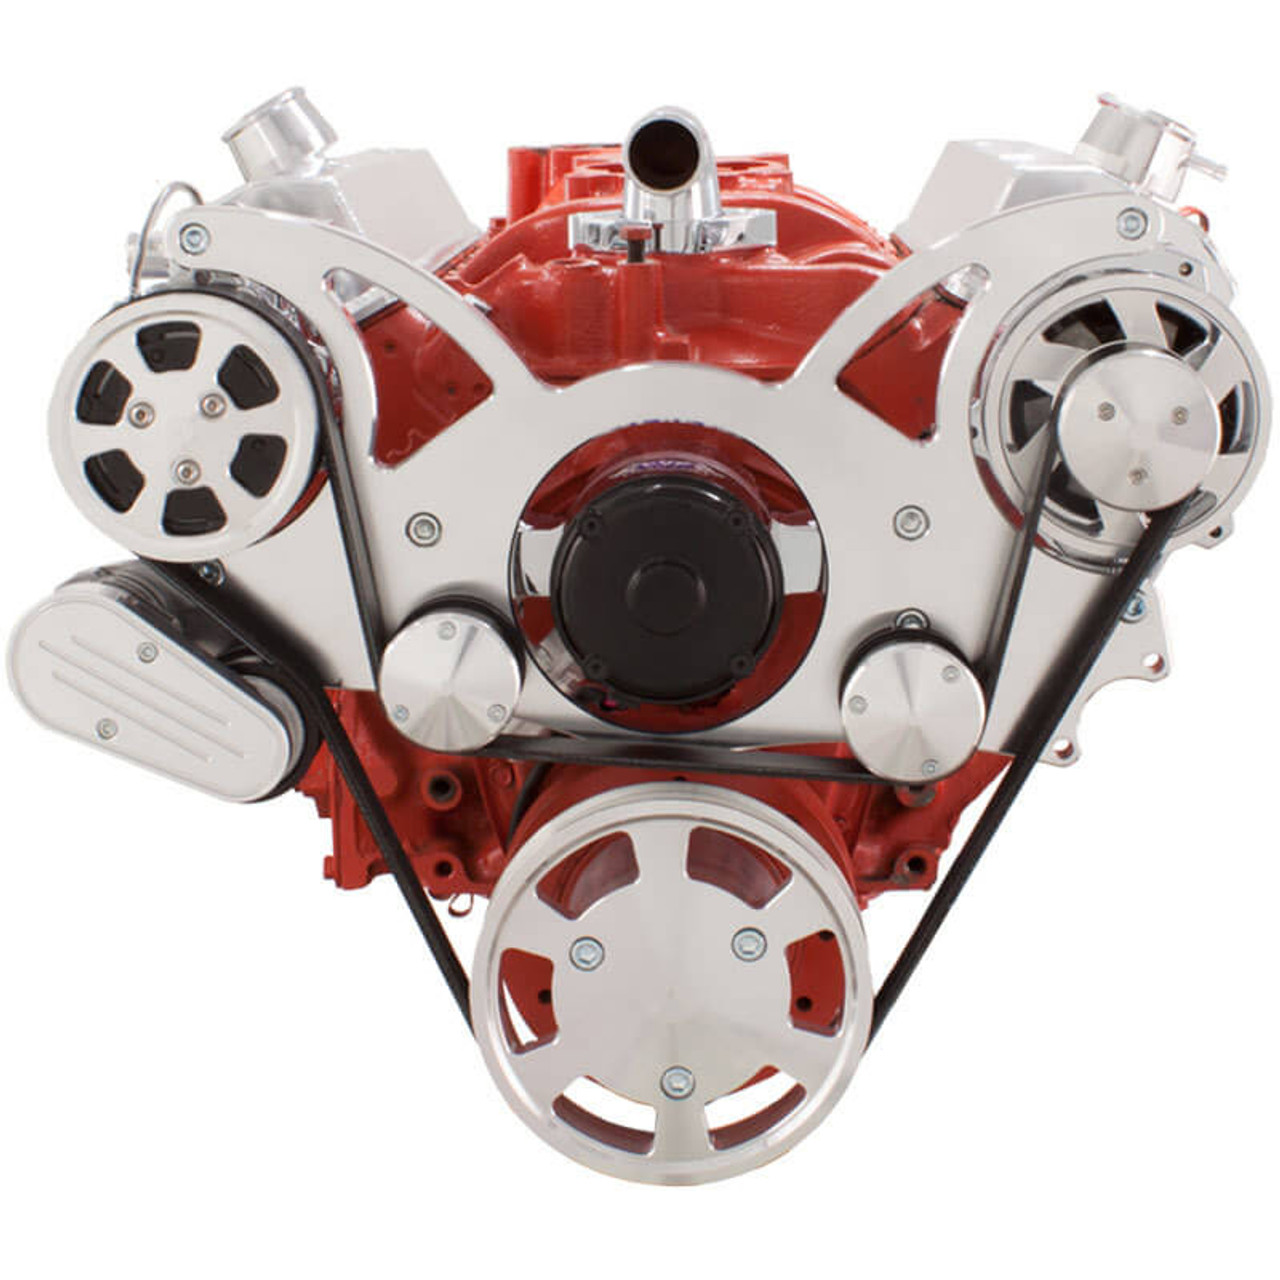 medium resolution of  serpentine conversion kit for small block chevy 283 350 400 with ac on 283 externally regulated alternator